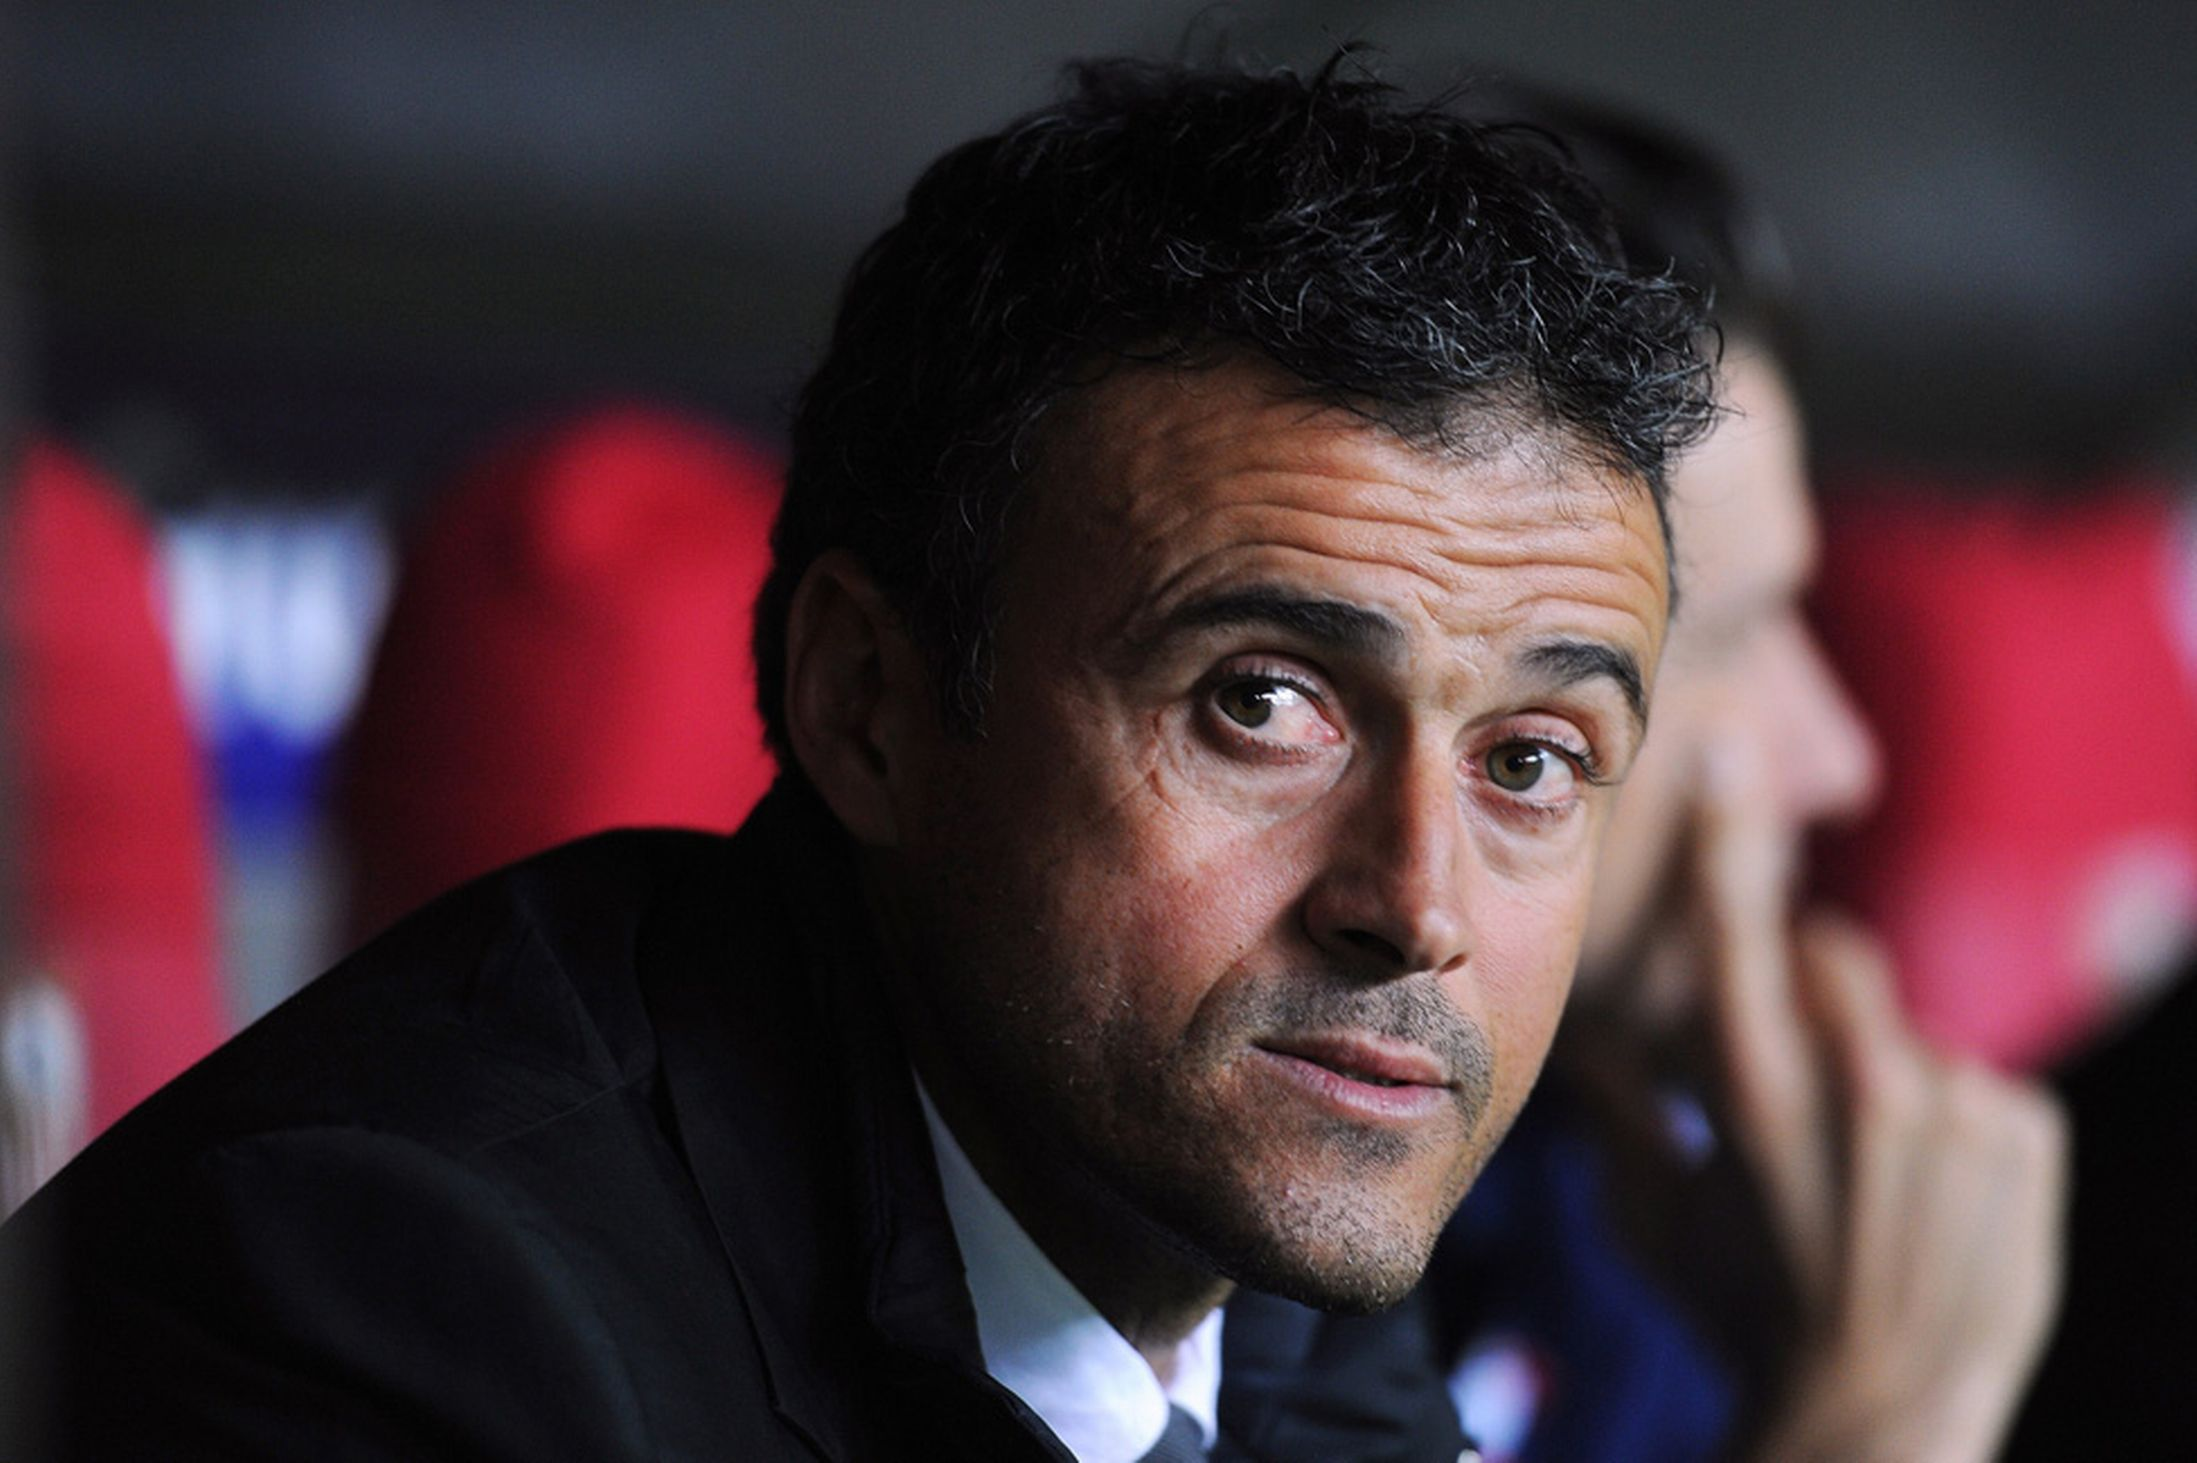 Barca: Luis Enrique 'I want to win all the titles, and all matches